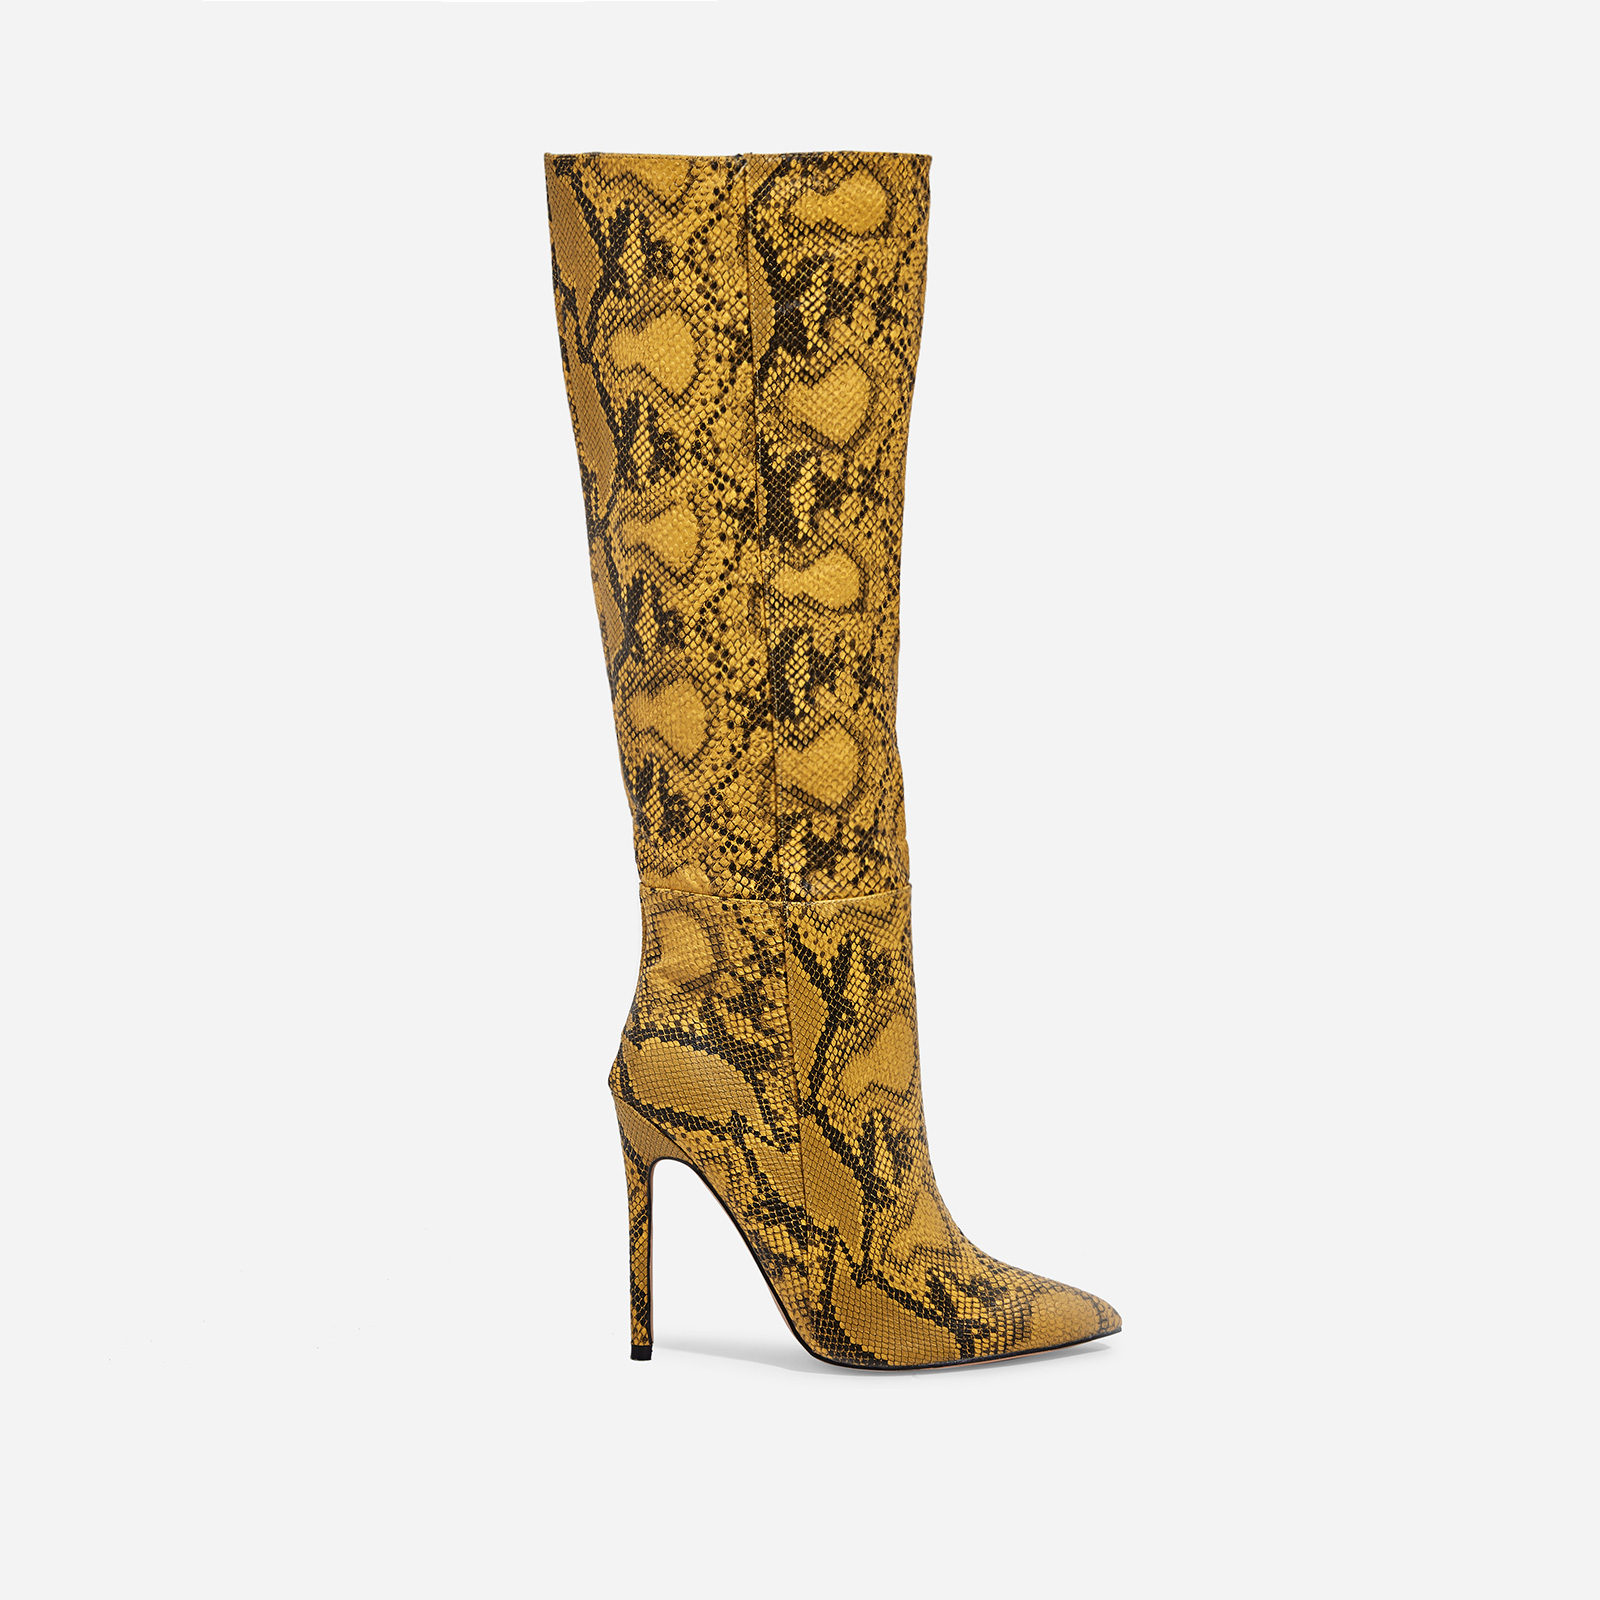 Rose Knee High Long Boot In Yellow Snake Print Faux Leather